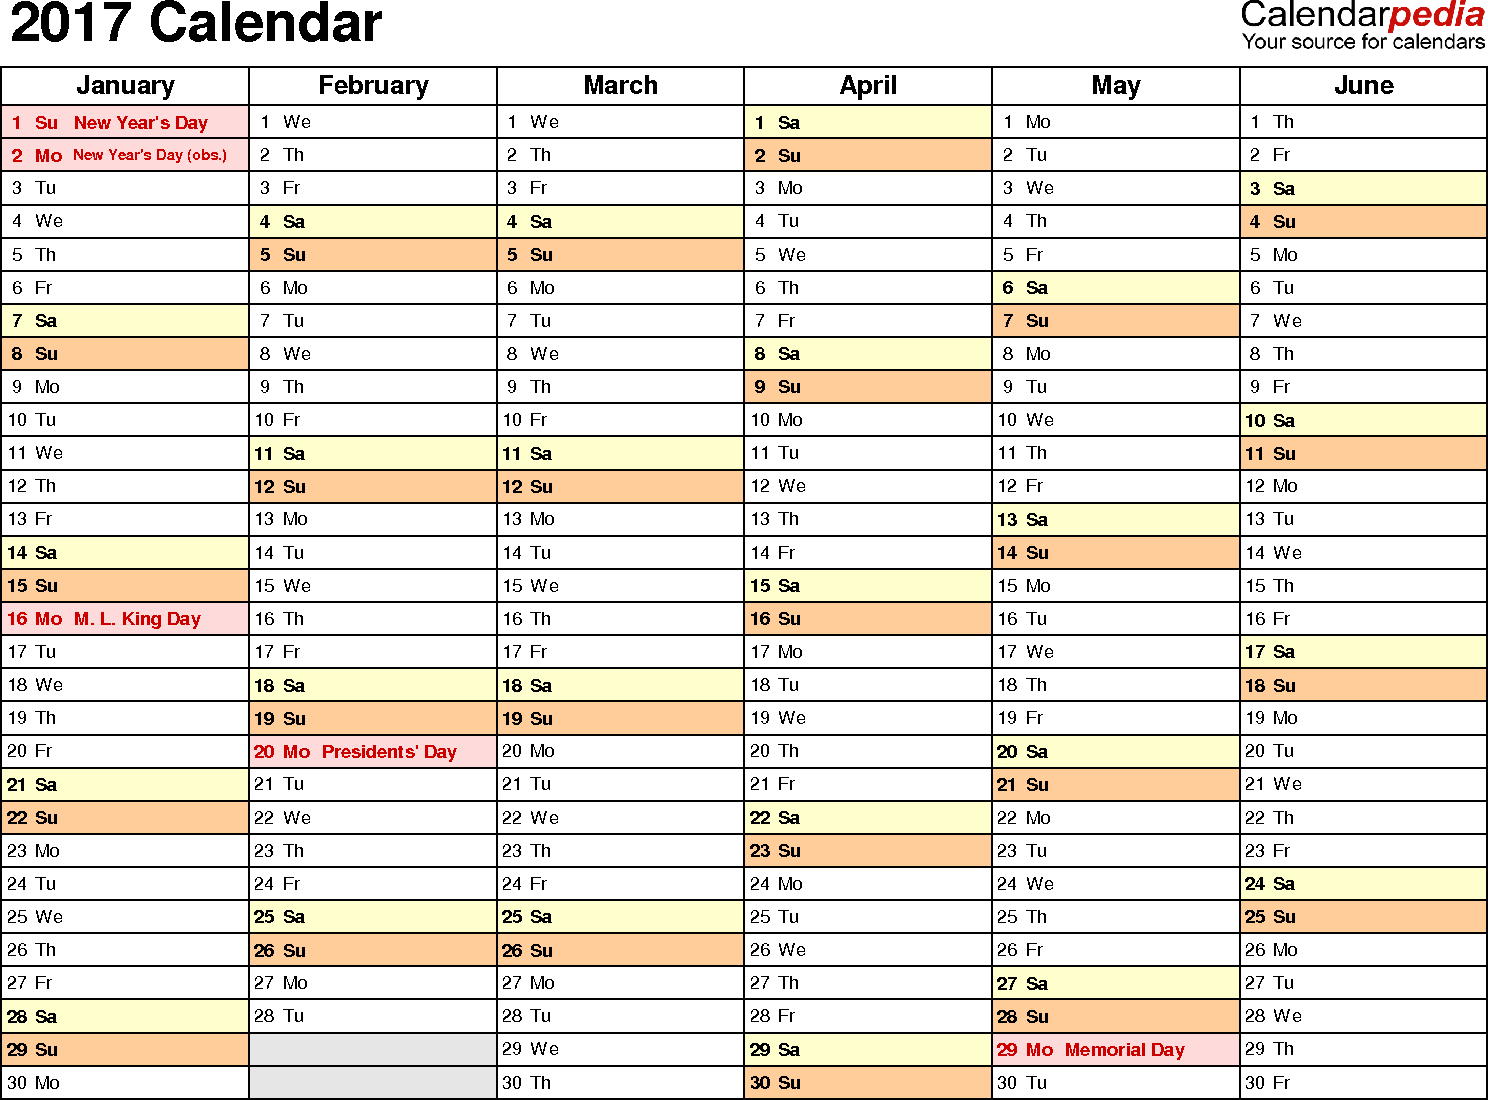 Ediblewildsus  Ravishing  Calendar  Download  Free Printable Excel Templates Xls With Great Template   Calendar For Excel Months Horizontally  Pages Landscape Orientation With Appealing Excel To Pdf Converter Online Also Tutorial For Macros In Excel In Addition Turn On Spell Check In Excel And Add Years To A Date In Excel As Well As How To Add Sign In Excel Additionally Home Loan Calculator Excel From Calendarpediacom With Ediblewildsus  Great  Calendar  Download  Free Printable Excel Templates Xls With Appealing Template   Calendar For Excel Months Horizontally  Pages Landscape Orientation And Ravishing Excel To Pdf Converter Online Also Tutorial For Macros In Excel In Addition Turn On Spell Check In Excel From Calendarpediacom